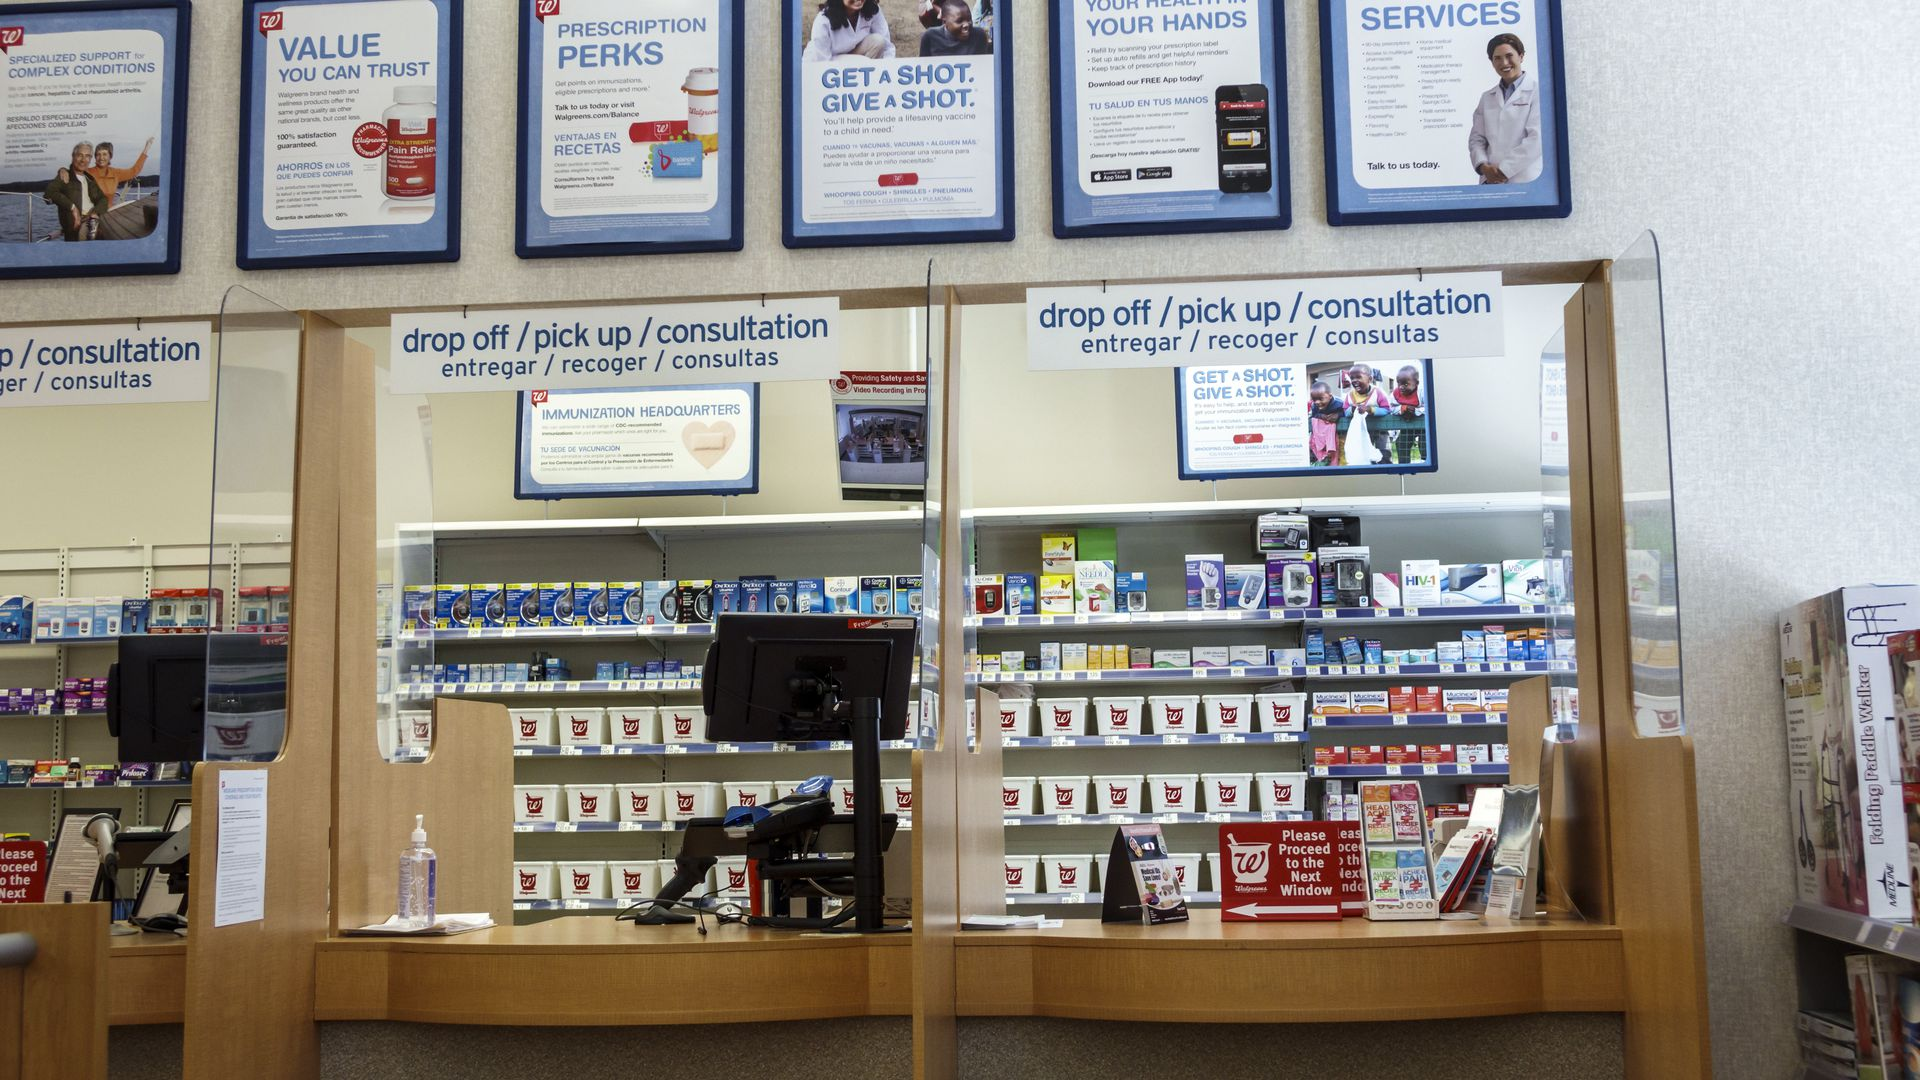 Pharmacy counter at Walgreens